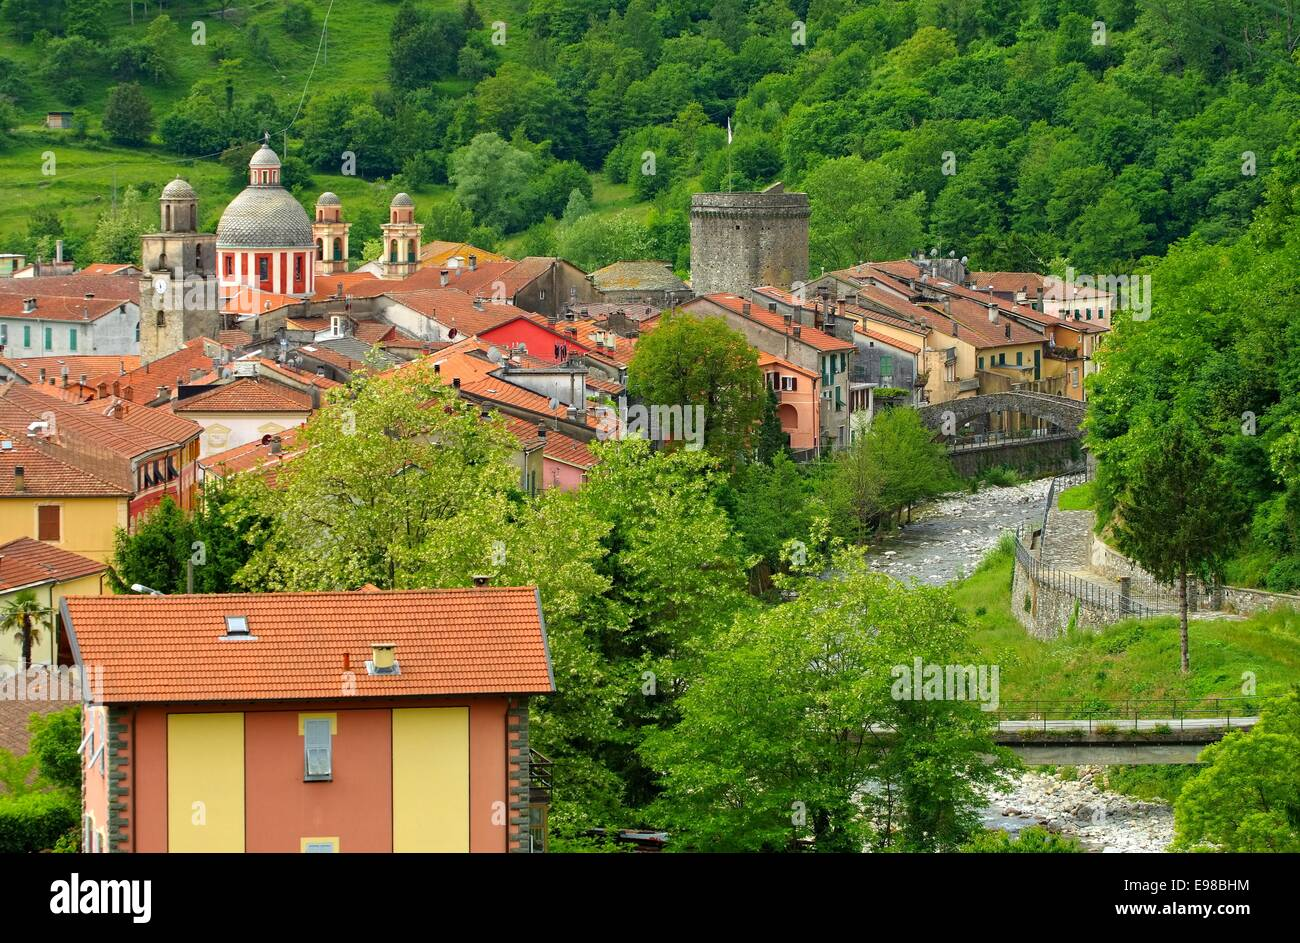 Varese Ligure 03 Stock Photo